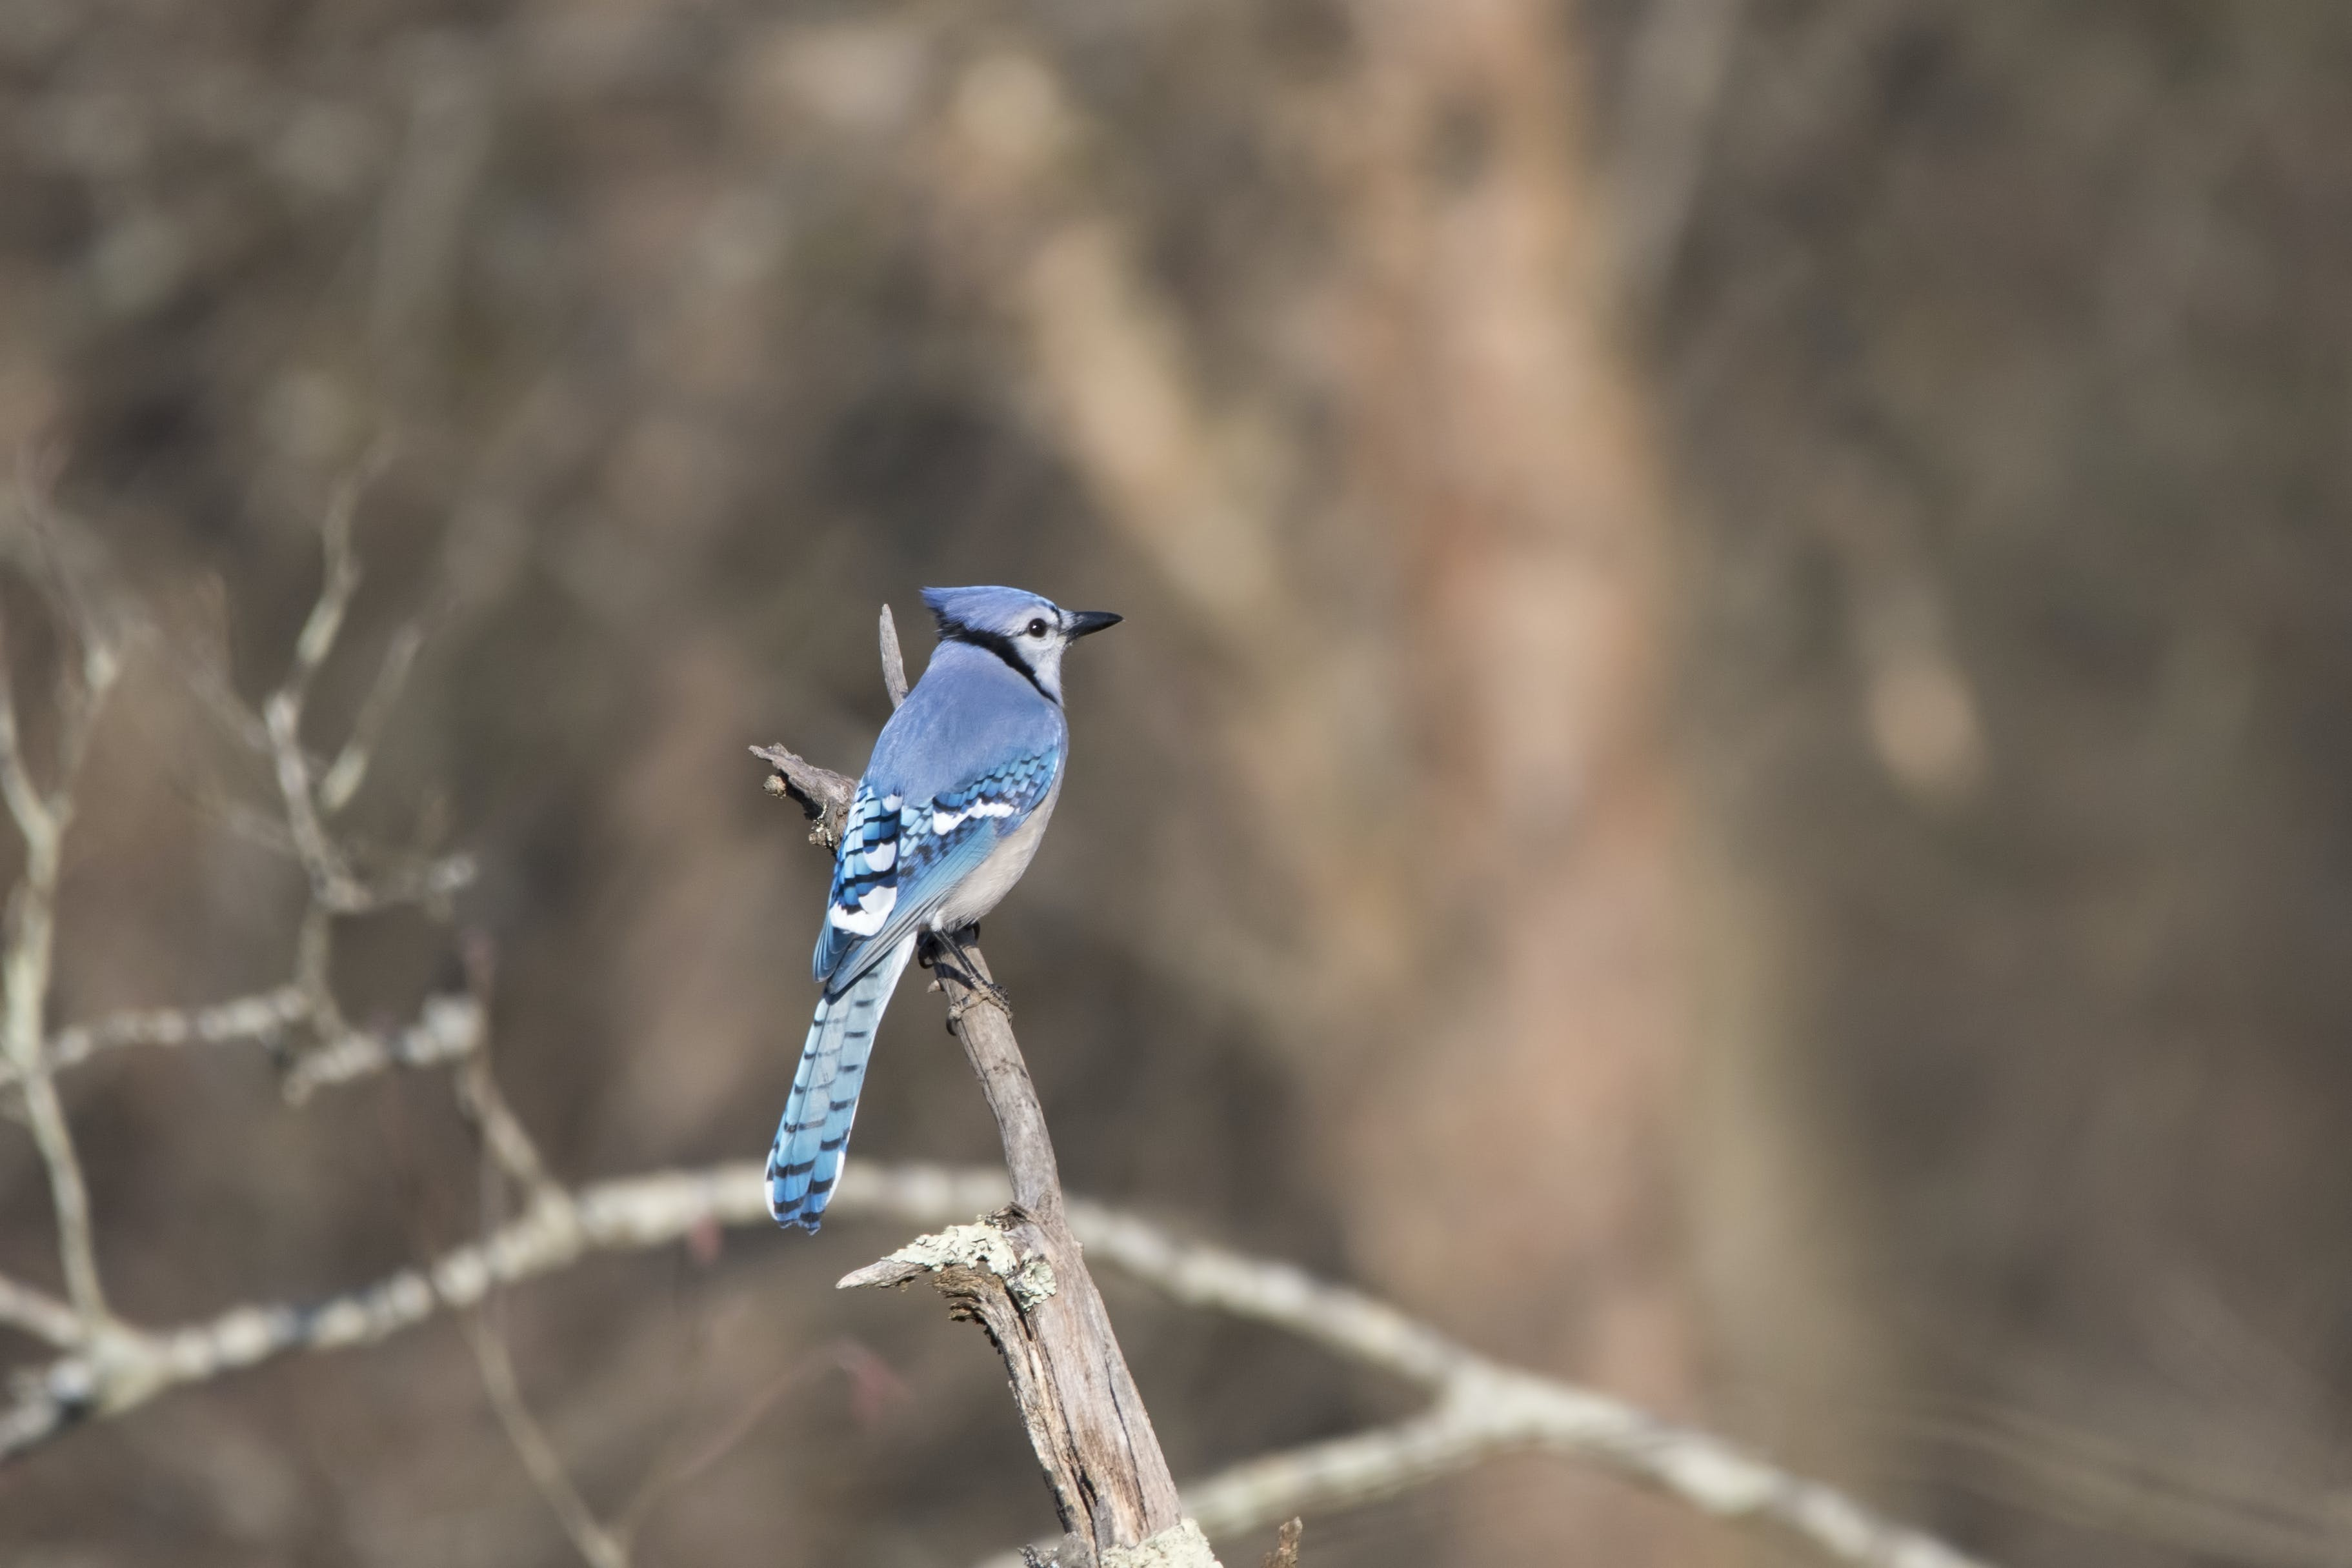 Tilt-shift Lens Photography of Blue Bird on Branch